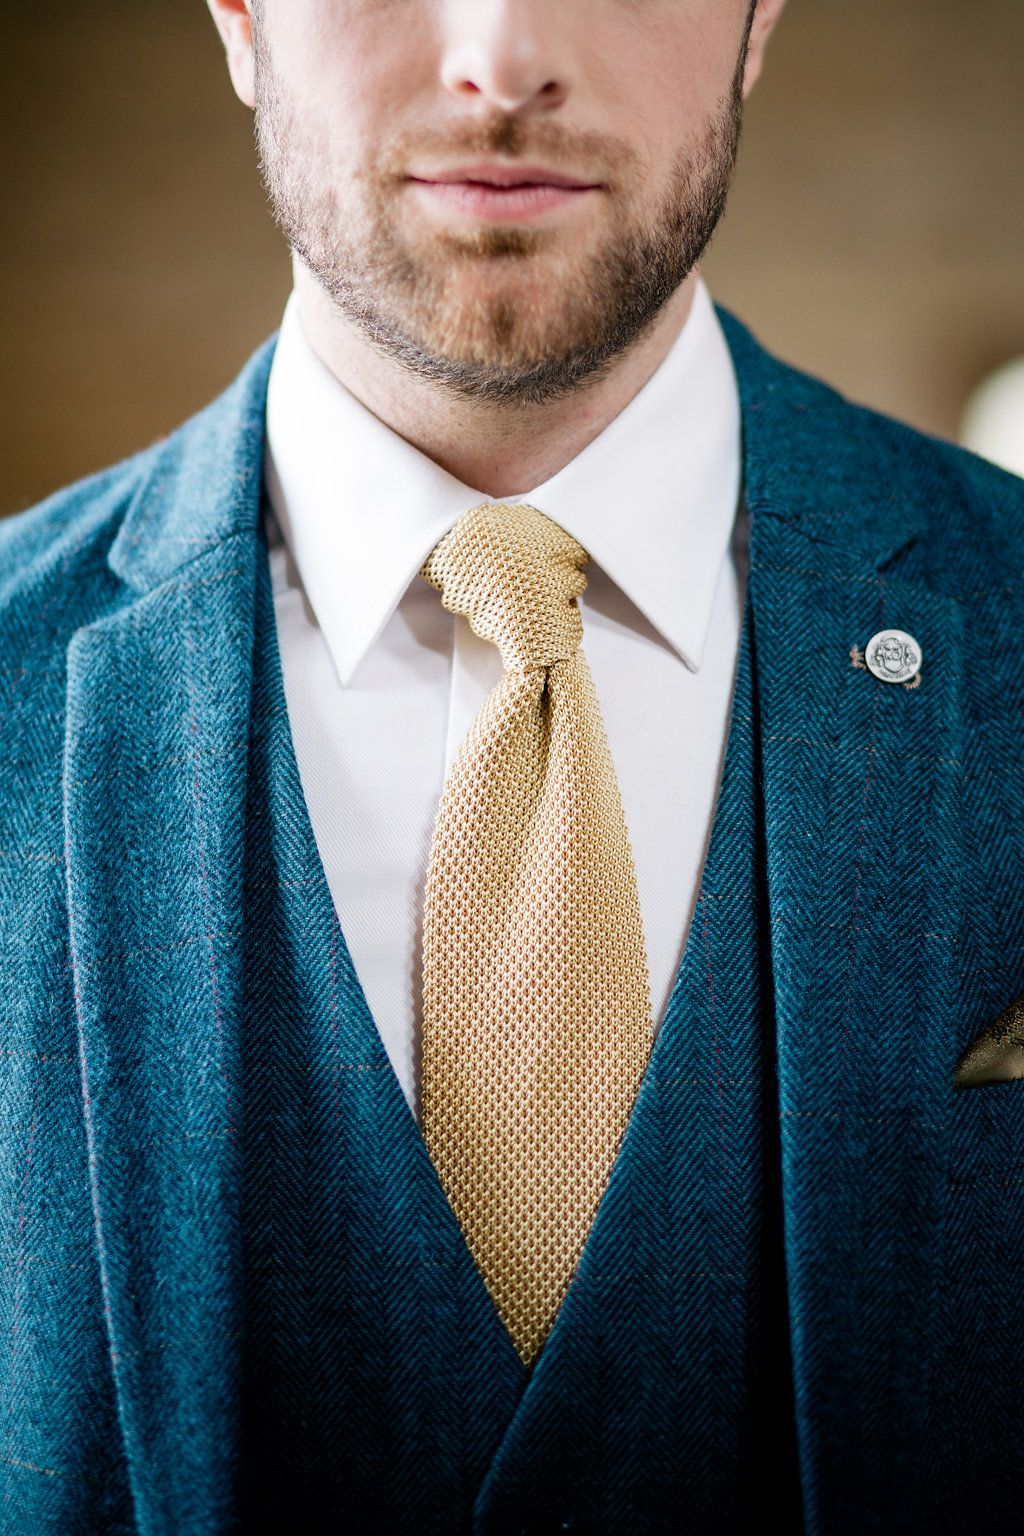 e24fd7475673 Knitted Groom Suit Blue Mustard Tie Badge Pin Lapstone Barn Wedding Ideas  Cotswolds Katie Hamilton Photography #wedding #Groom #Suit #Blue #attire  #outfit